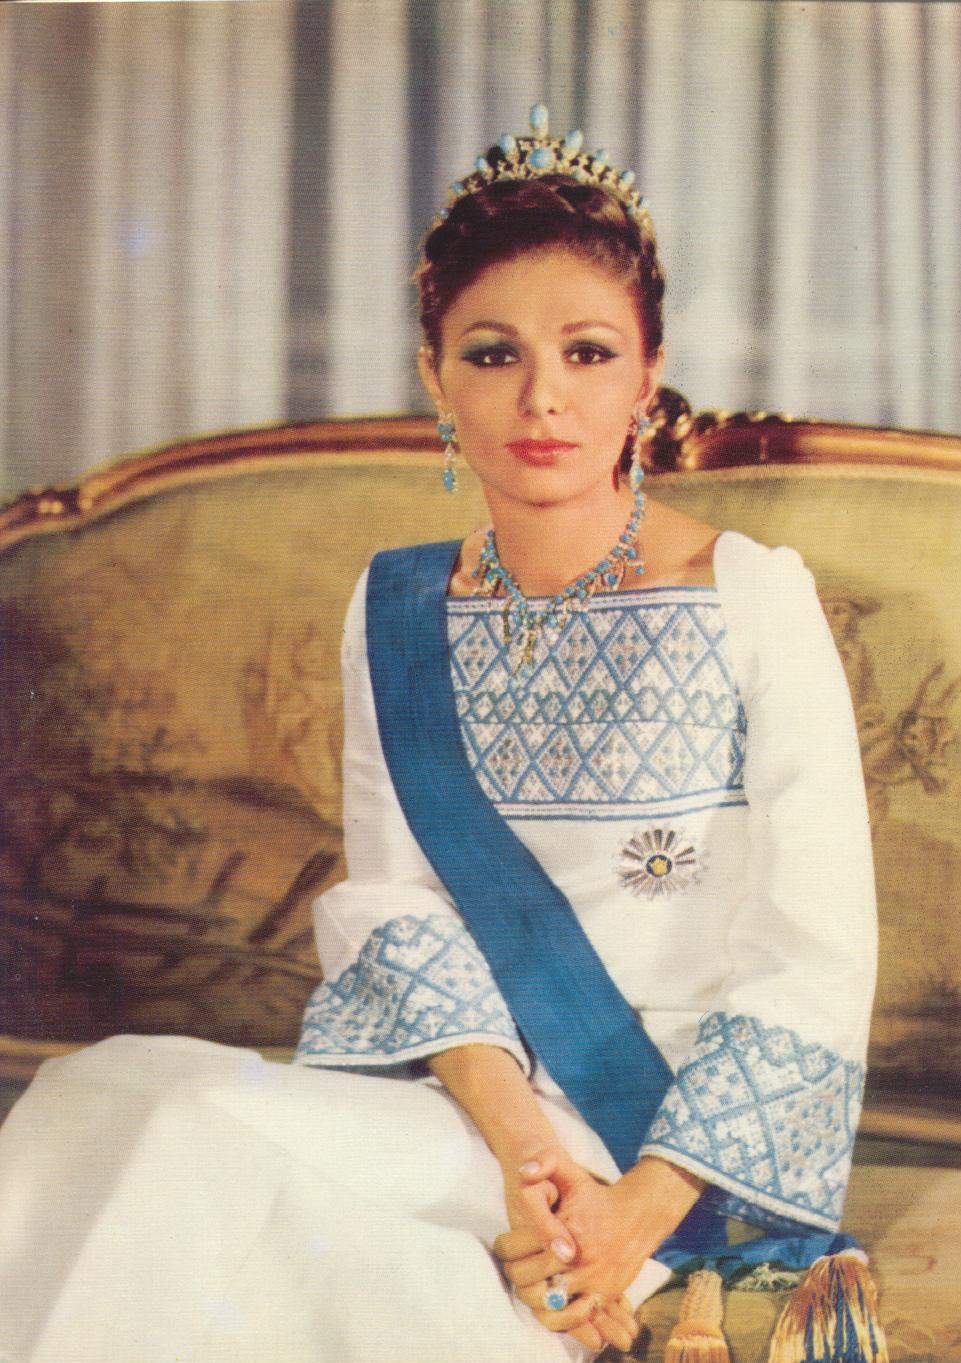 the children of farah pahlavi